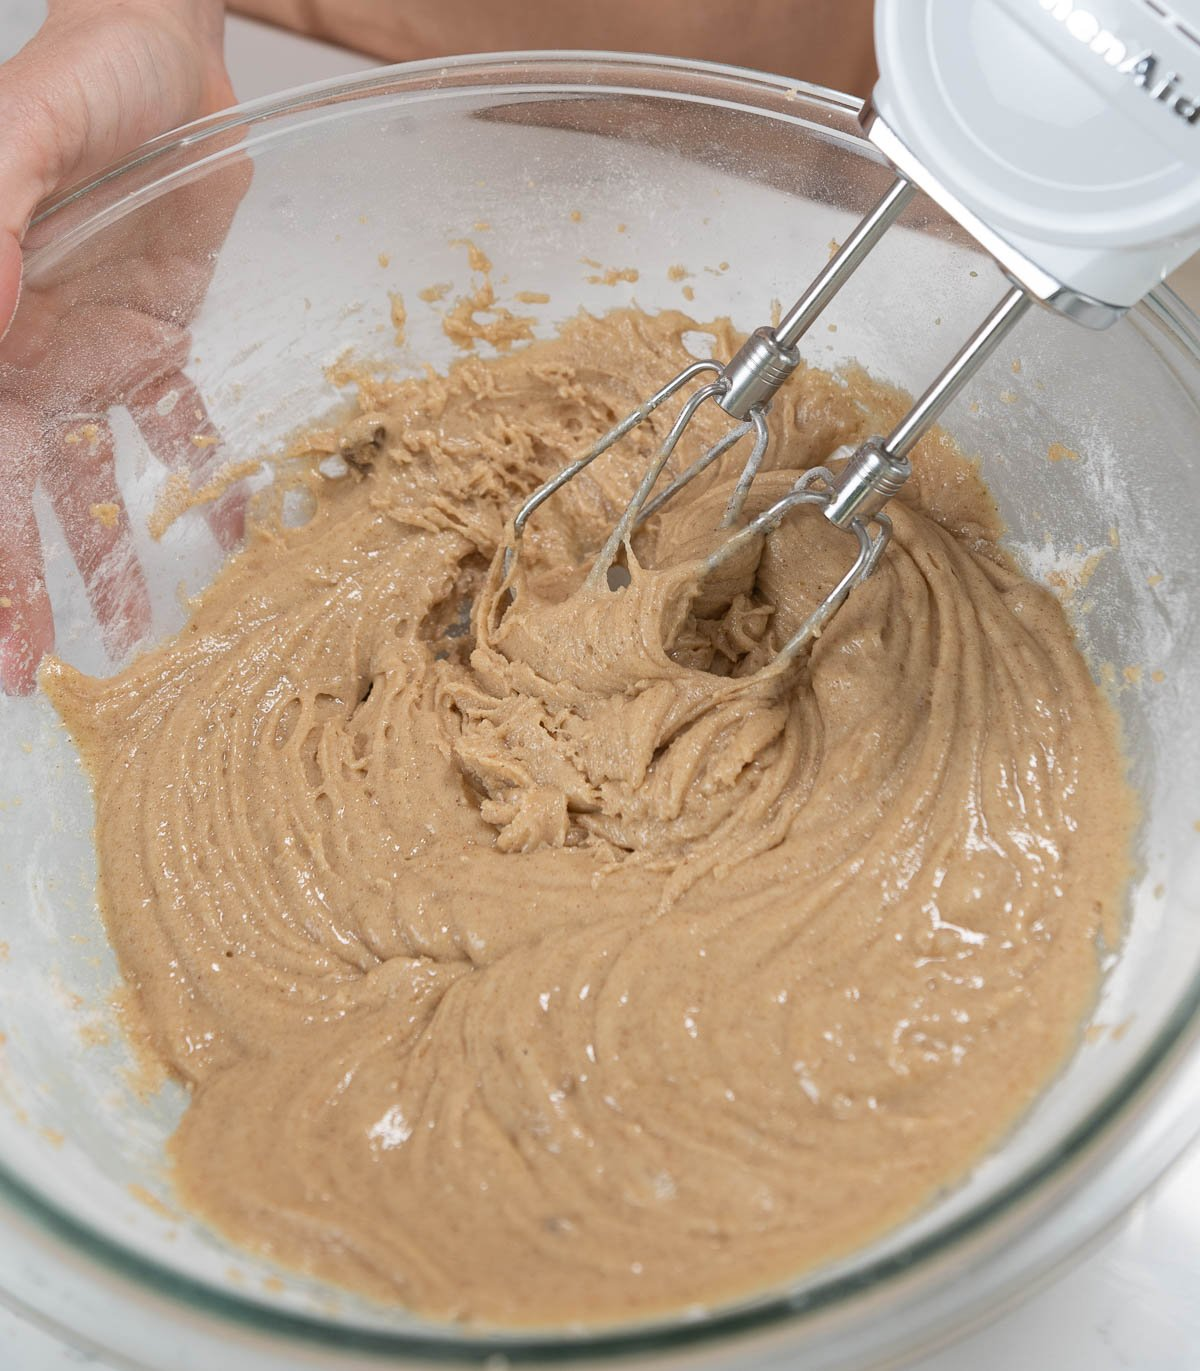 mixing texas sheet cake batter in a clear mixing bowl